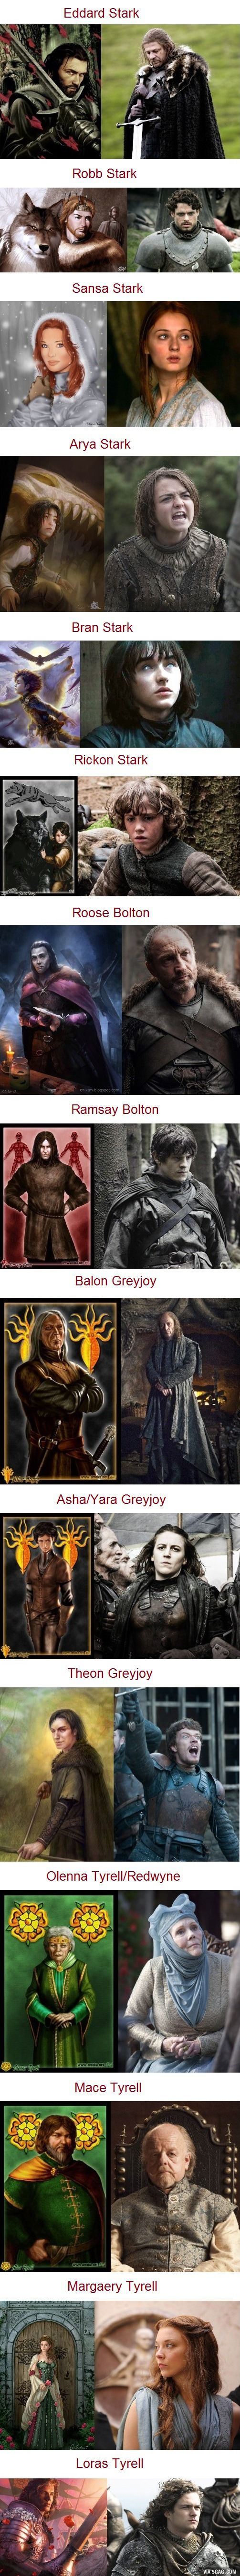 Game of Thrones Characters: In the Books vs. On the Show Part 2